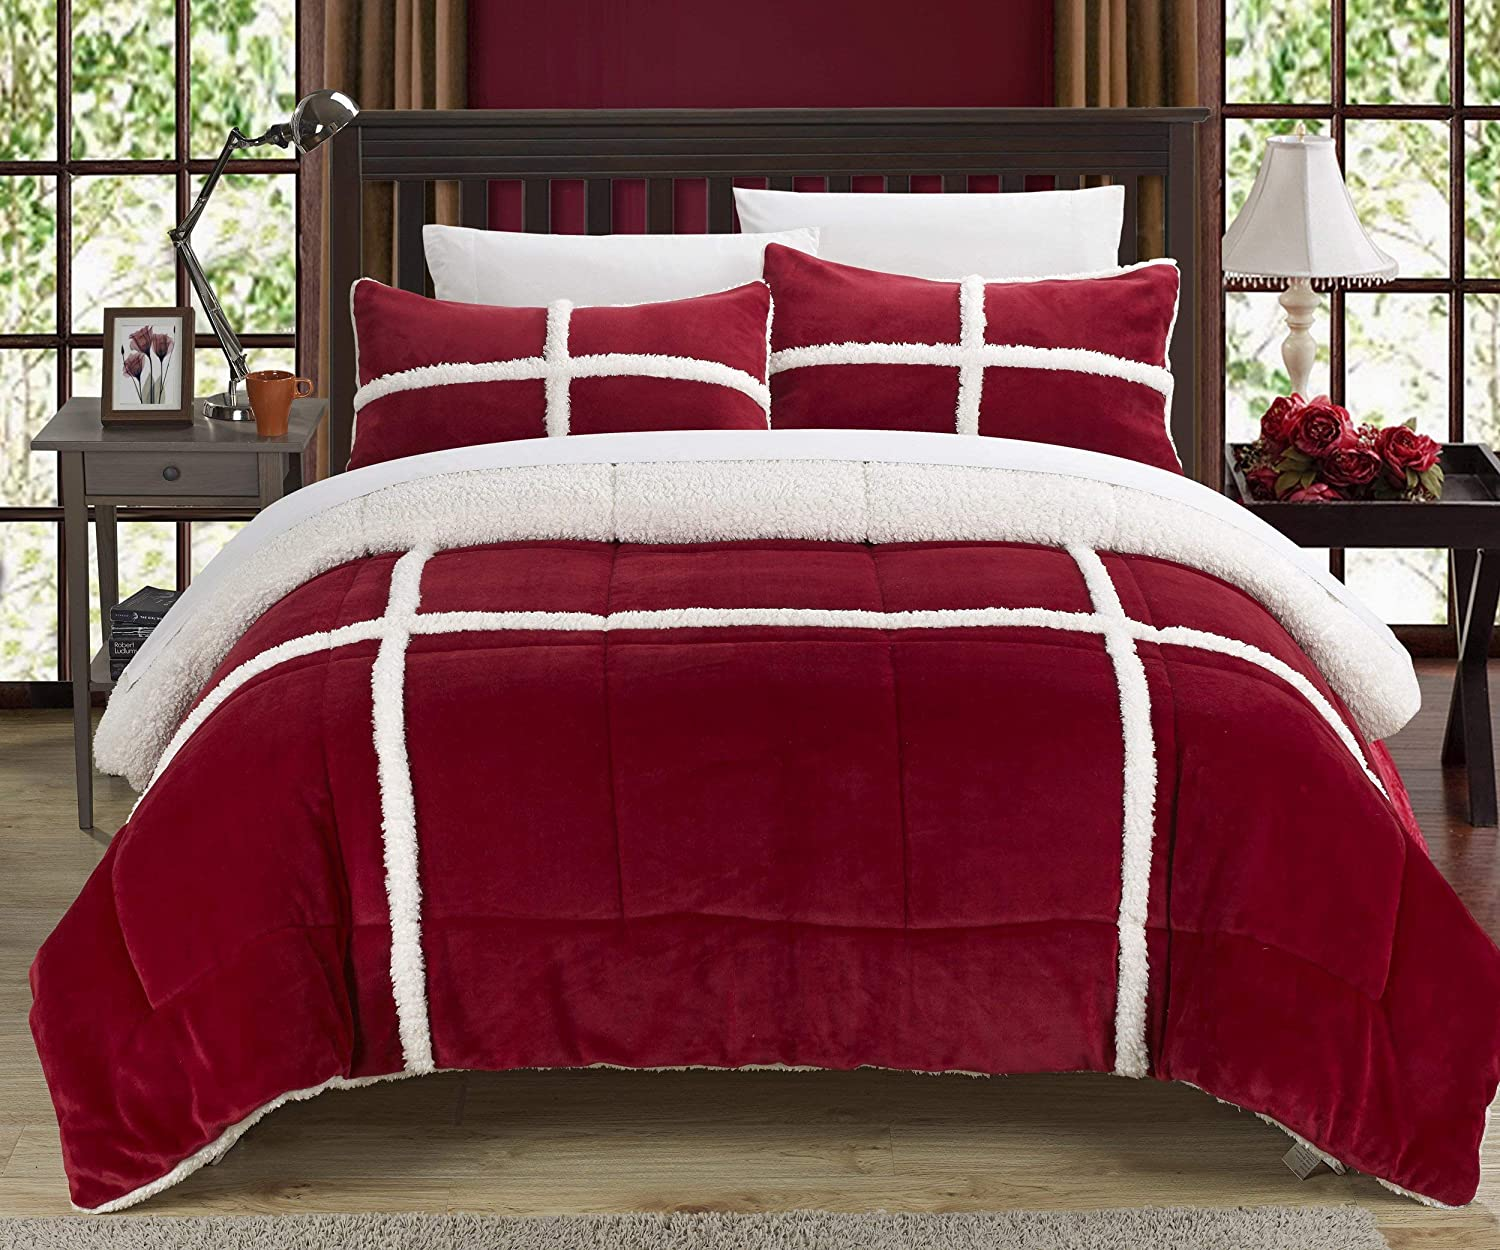 Chic Home 3 Piece Chloe Sherpa Comforter Set, Queen, Red